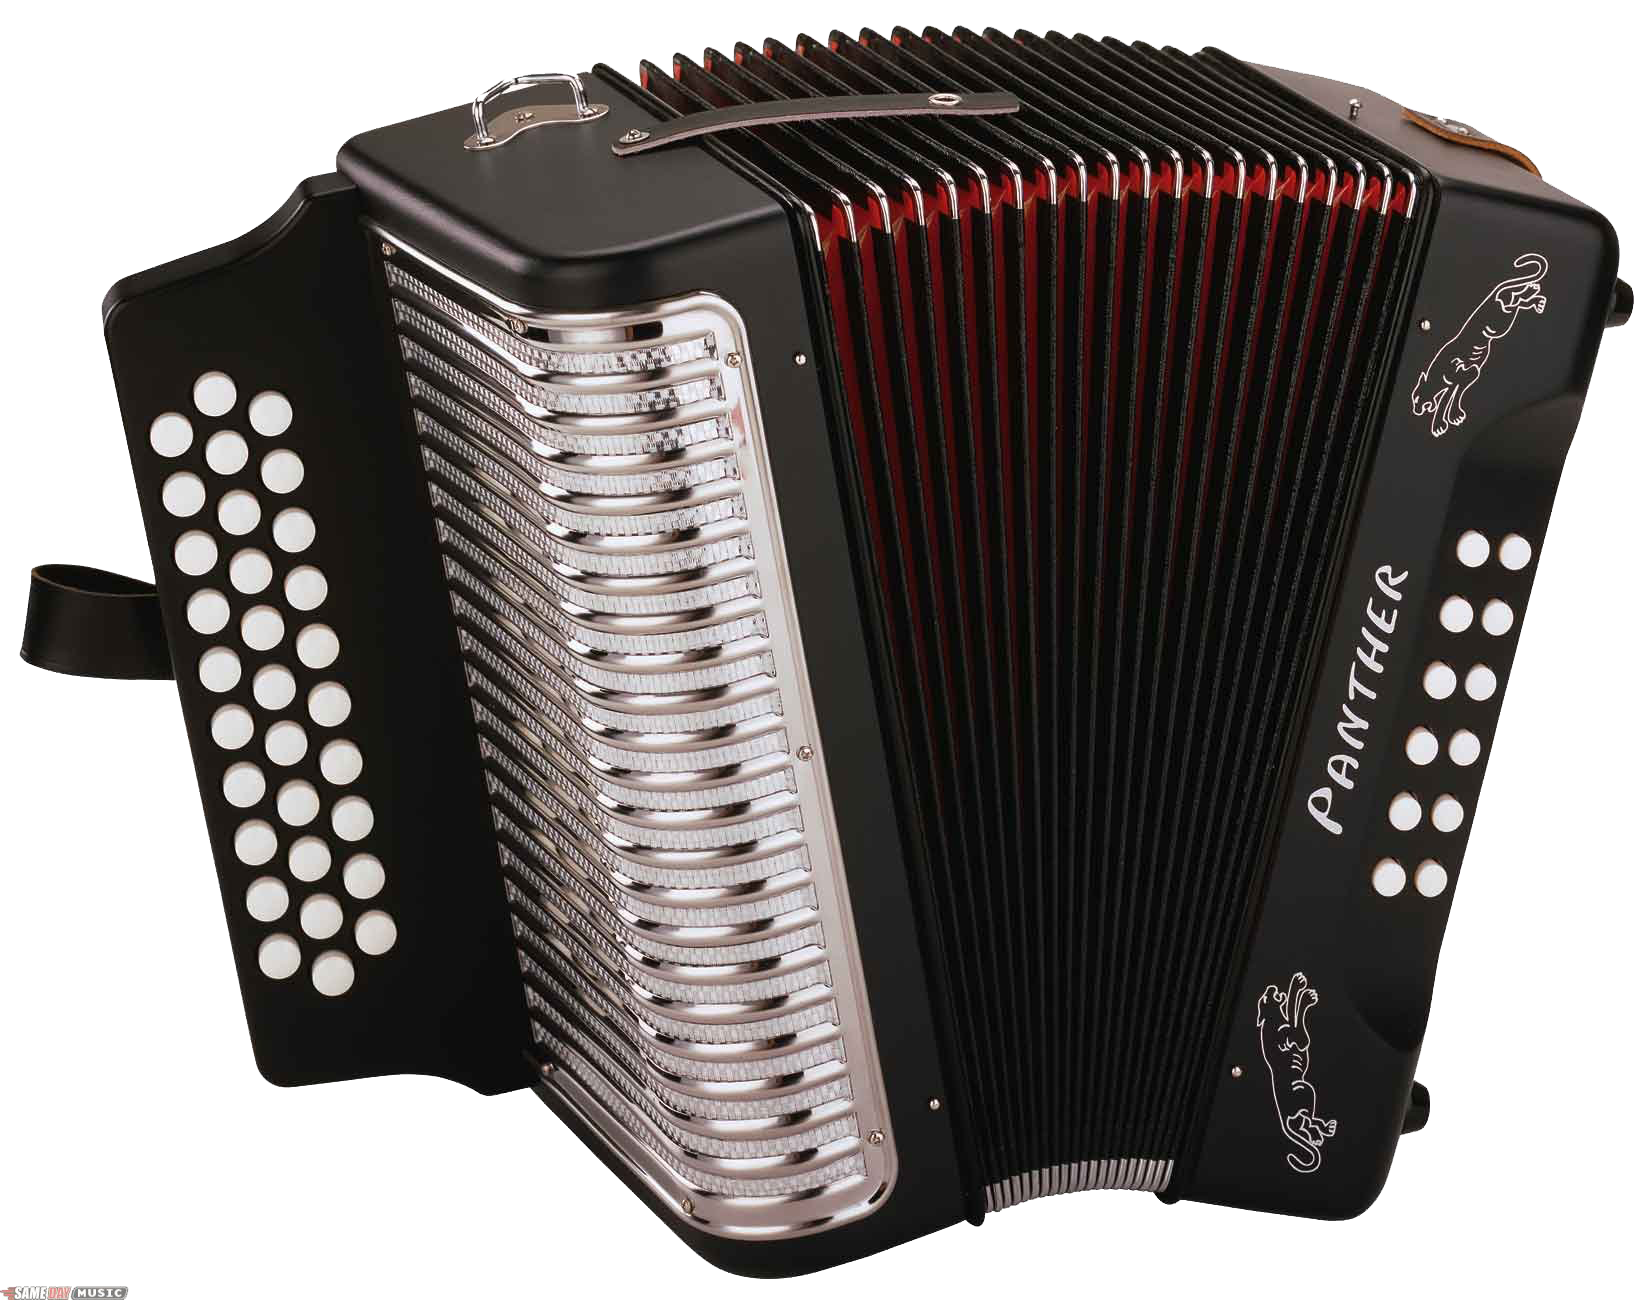 Accordion PNG - 1170